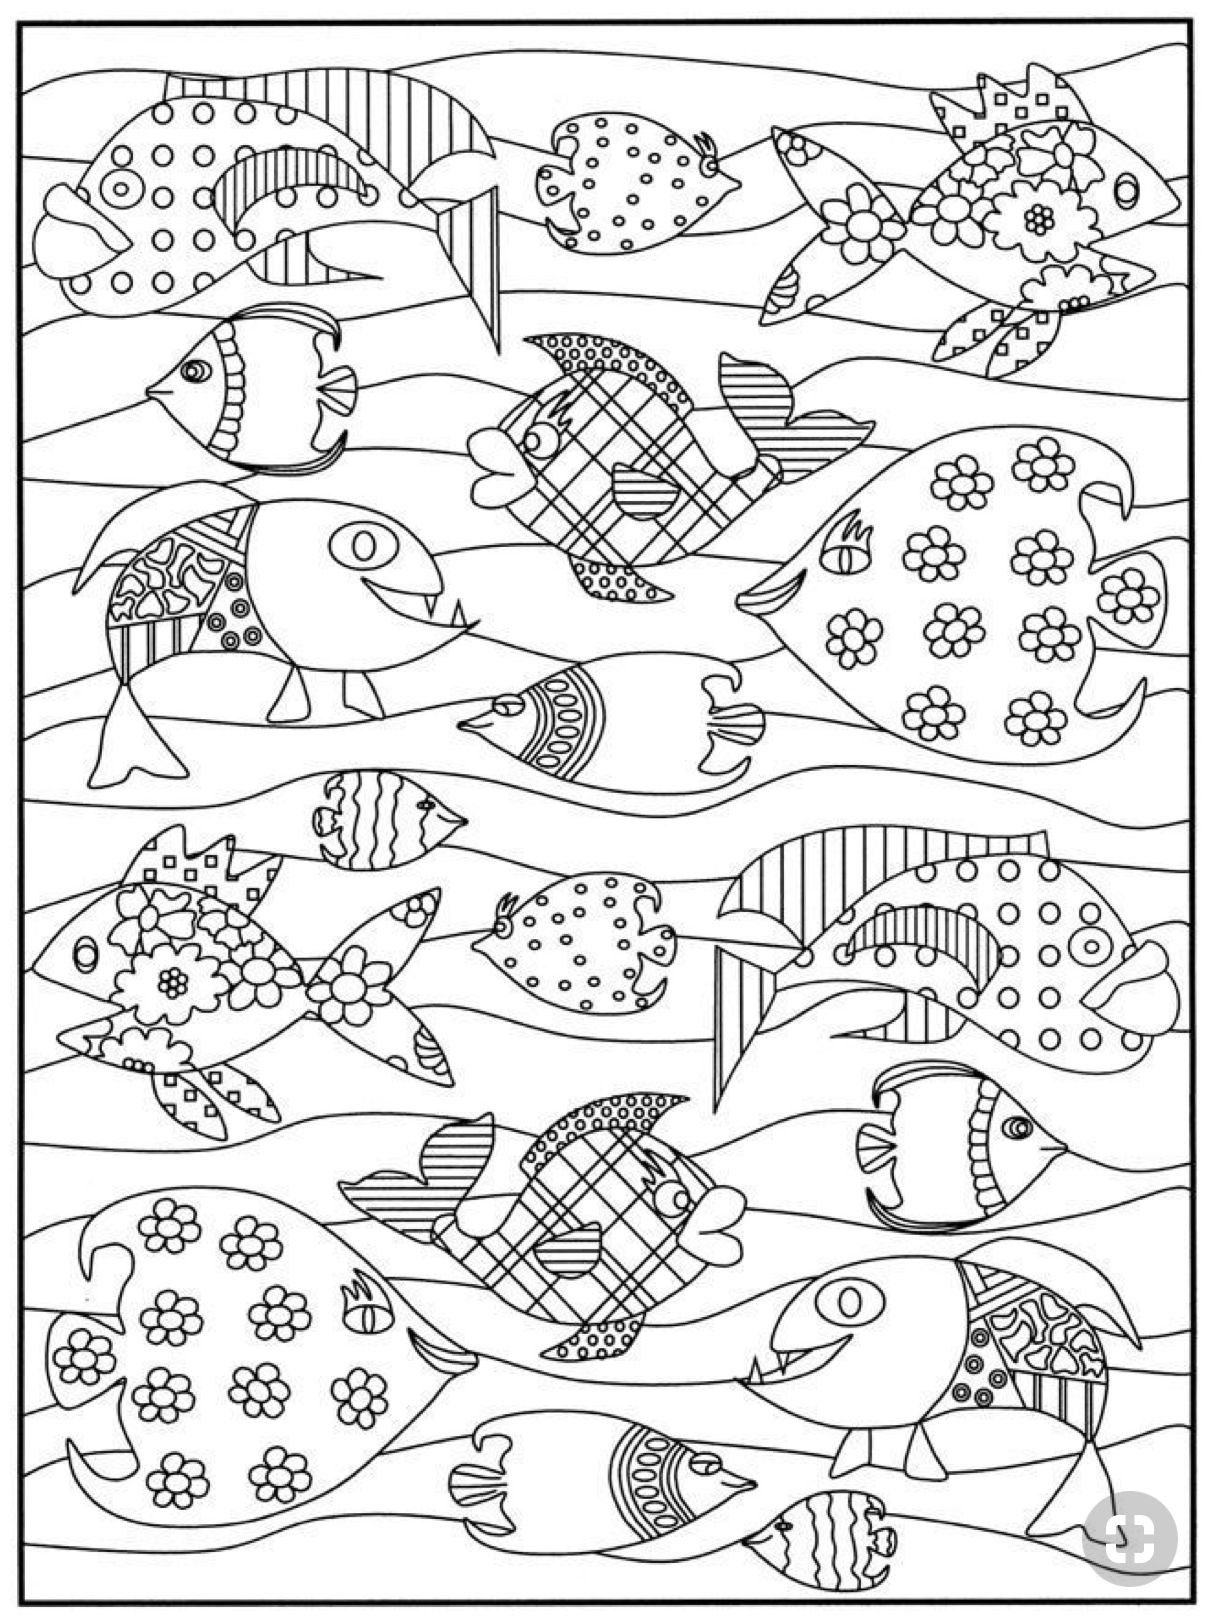 Pin By Amy York On Art Class Coloring Books Coloring Pages Colouring Pages